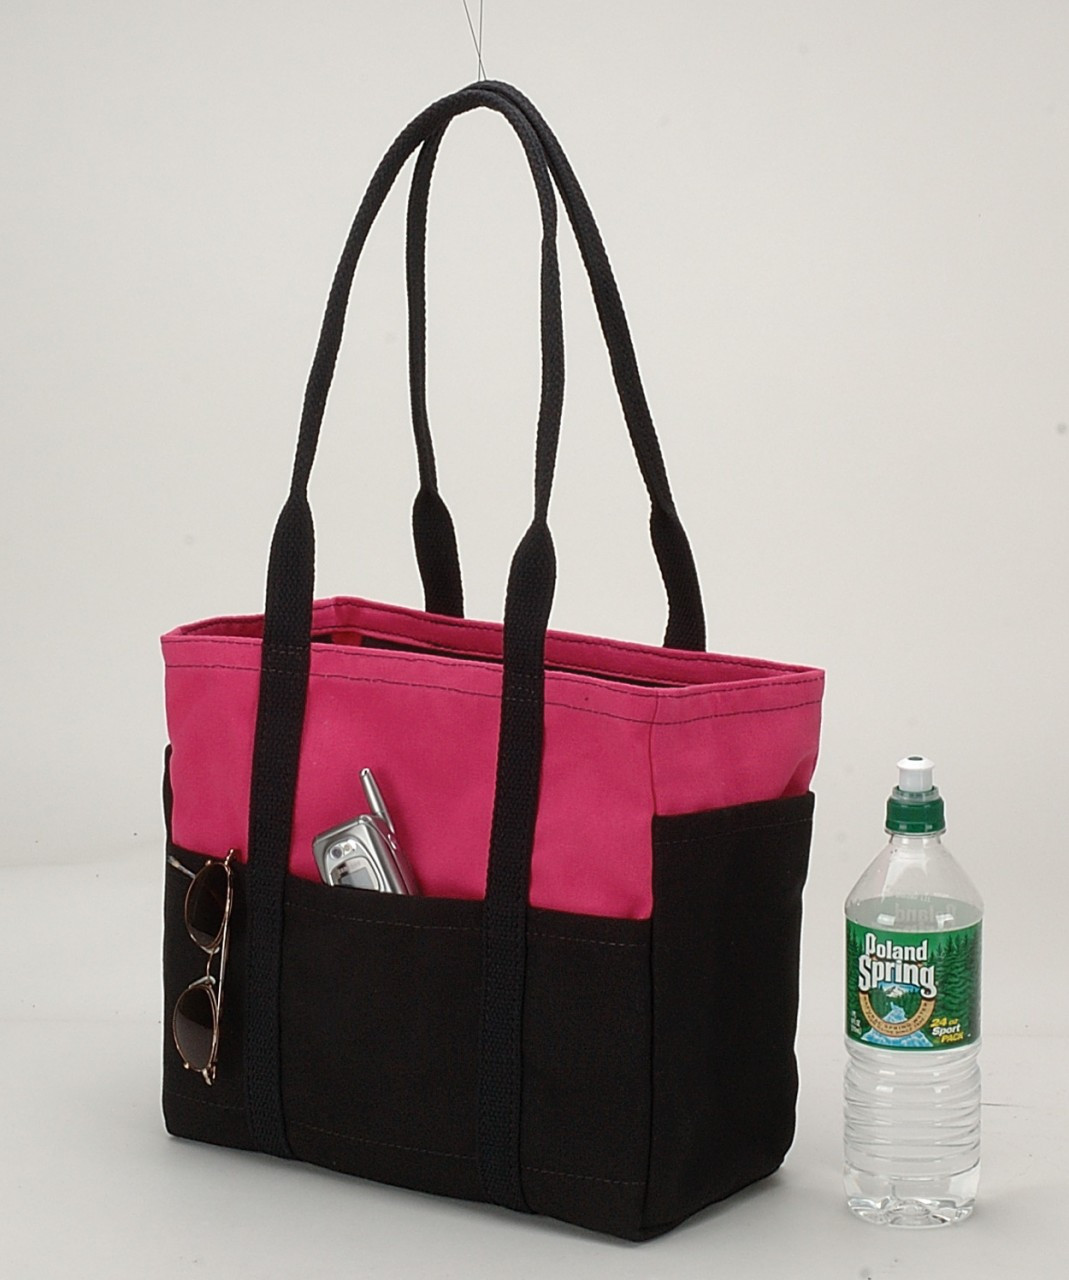 shellseeker tote bag